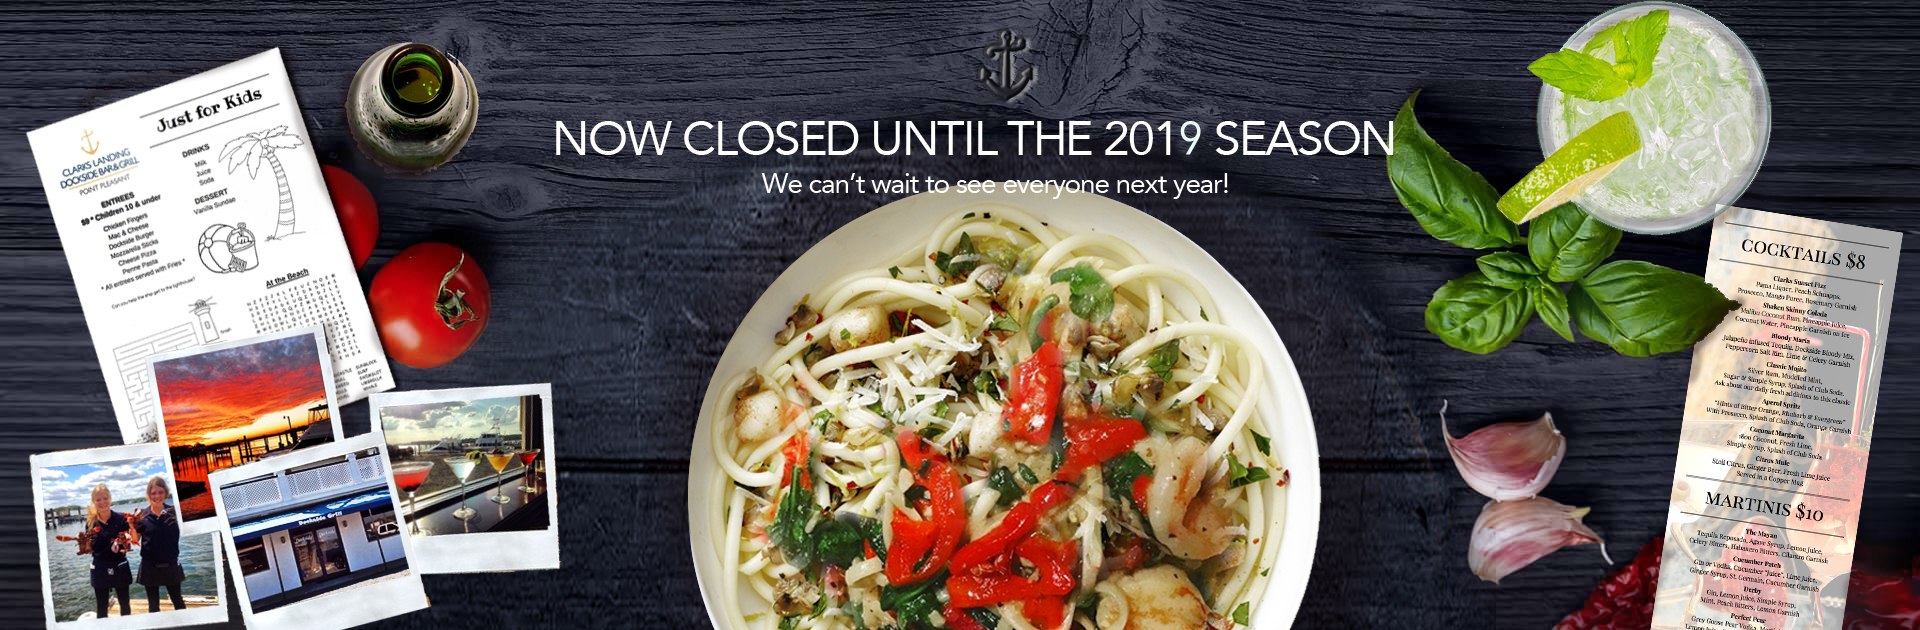 closed banner 2019